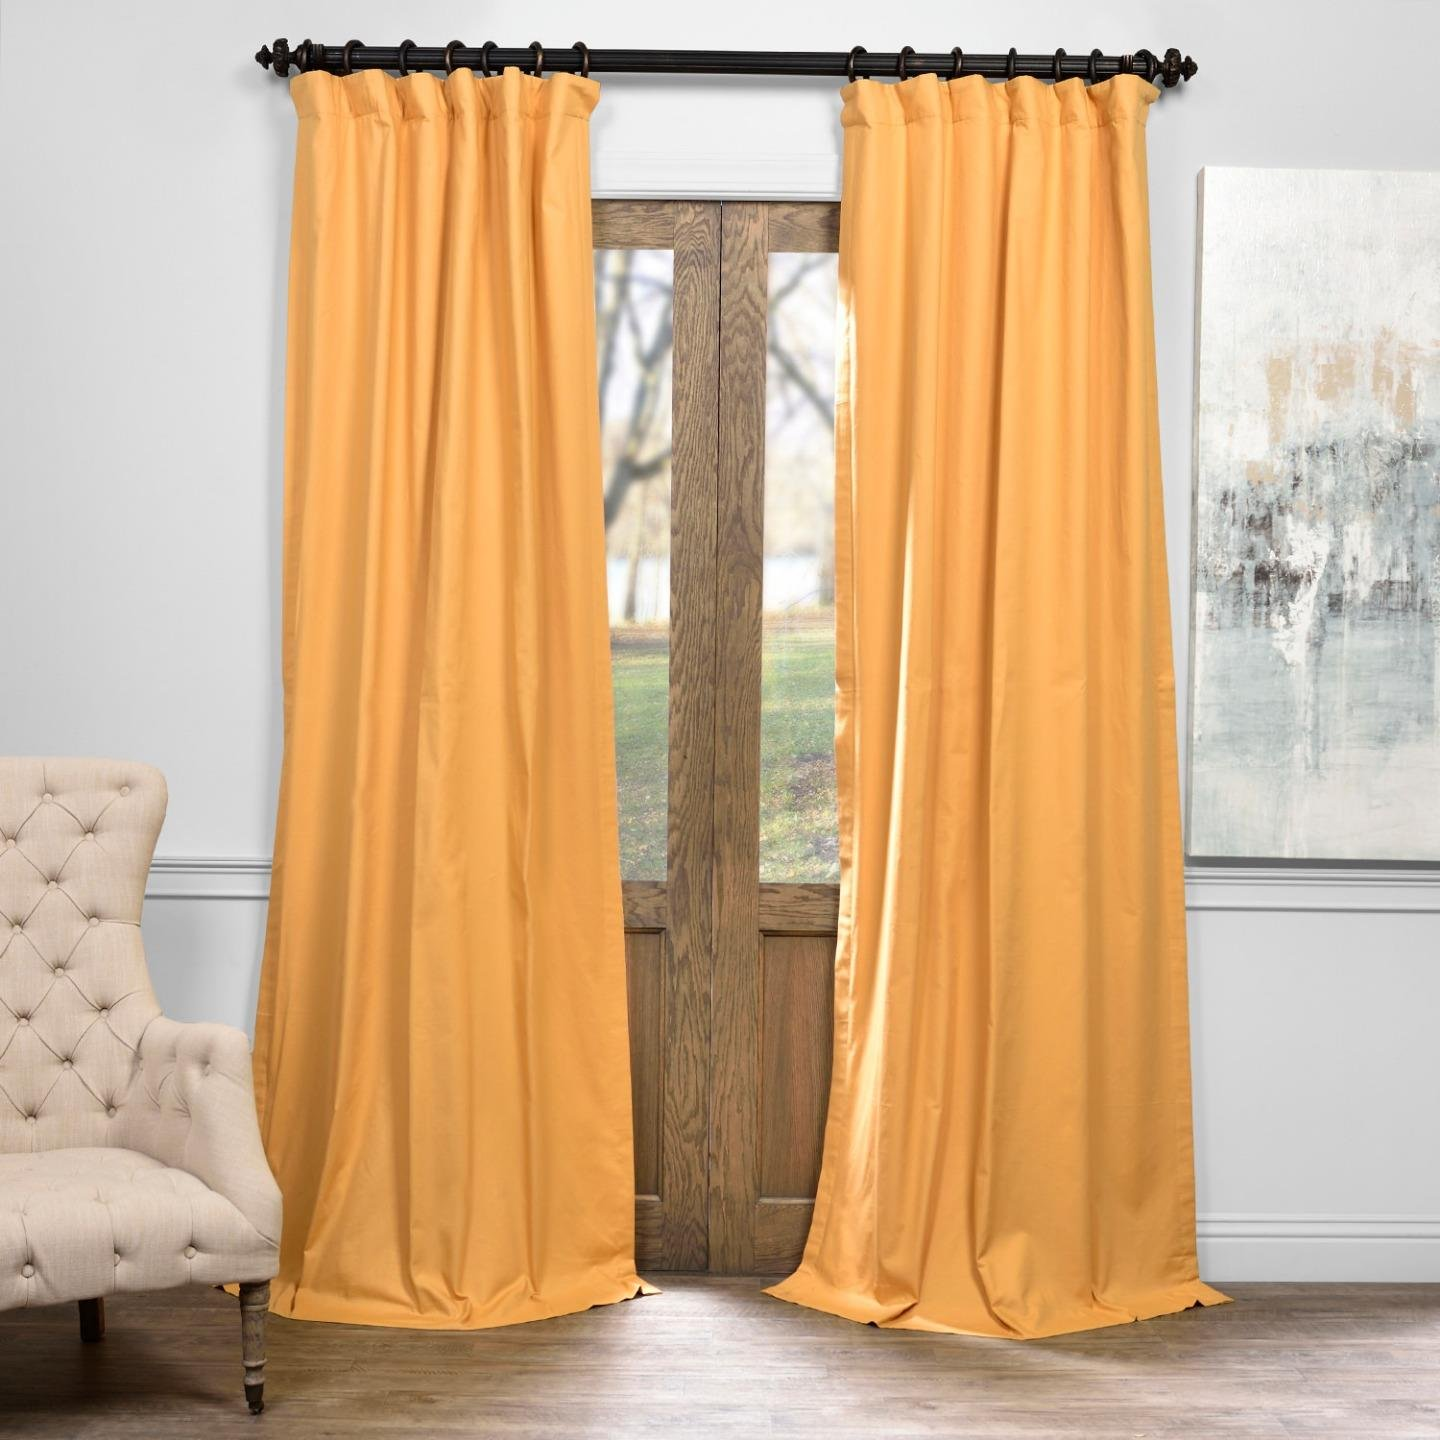 Half Price Drapes PRCT-BO05B-84 Solid Cotton Blackout Curtain, 50 x 84, Spicy Mustard